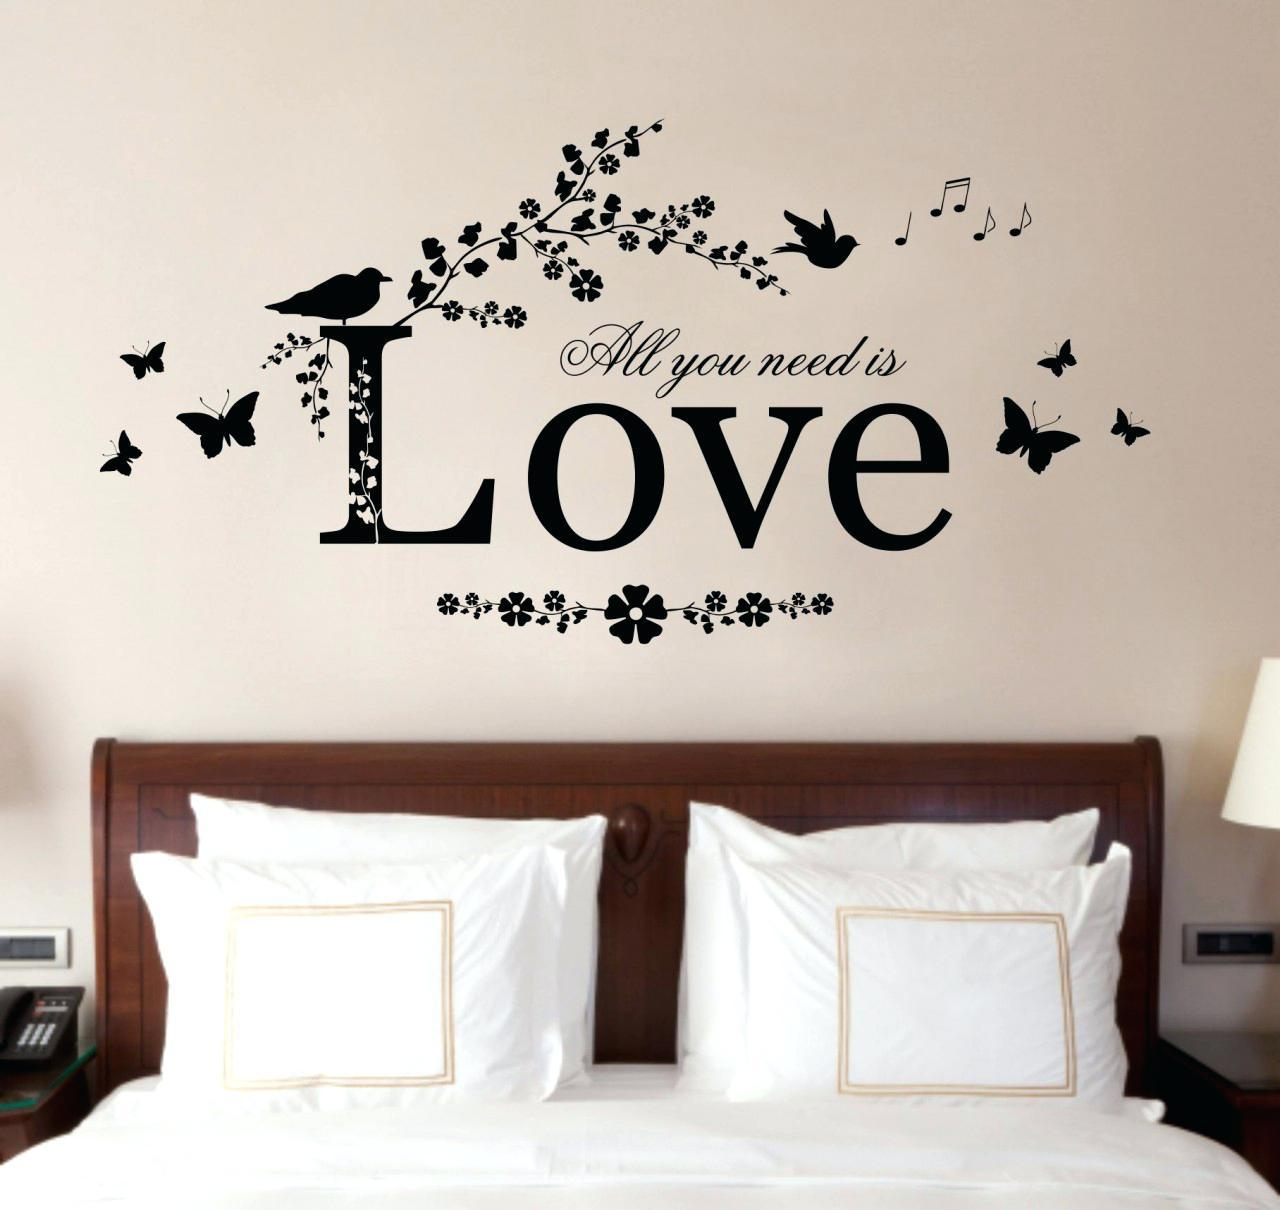 Wall Ideas : Vertical Metal Wall Art Large Vertical Metal Wall Art With Regard To Sharpie Wall Art (Image 18 of 20)